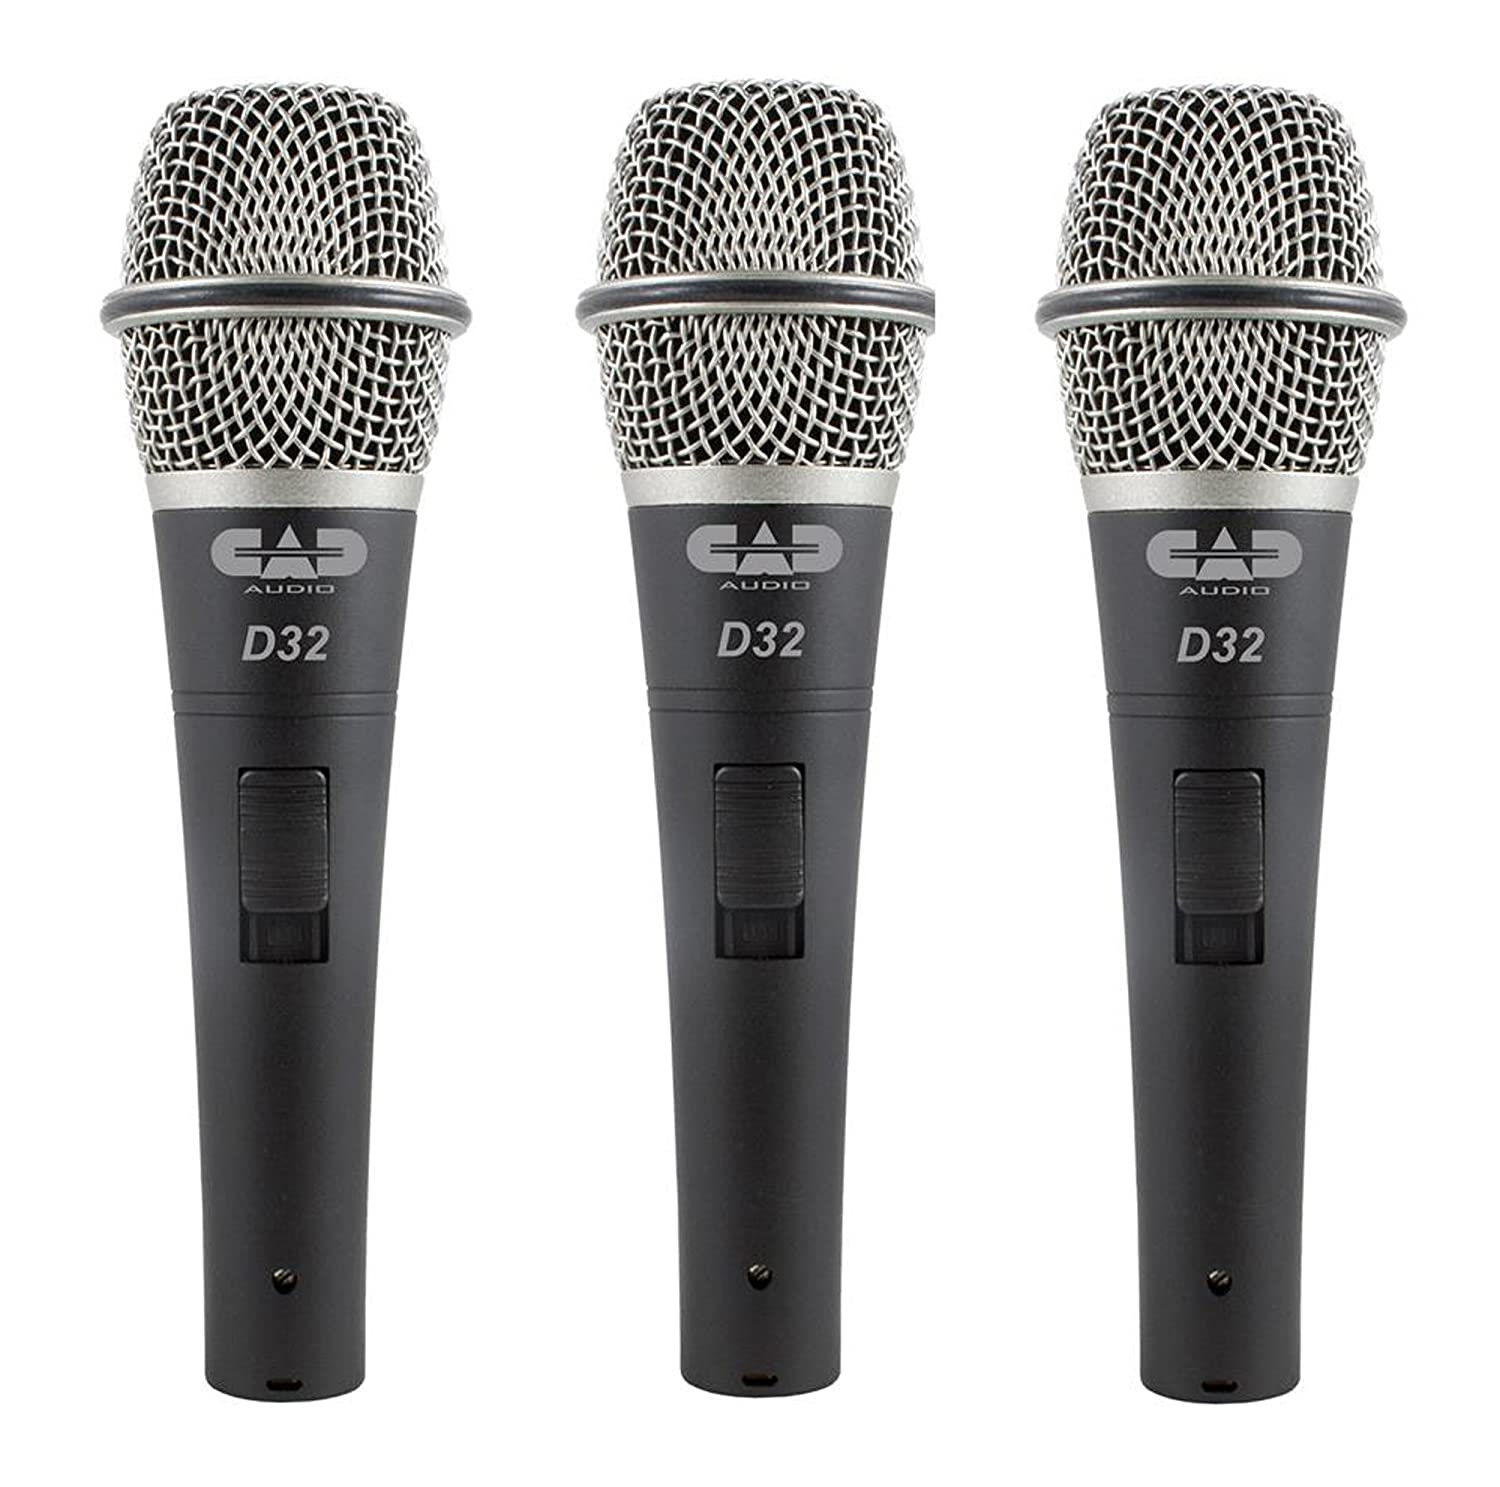 CAD Audio D32 Supercardioid Dynamic Vocal Microphone with On/Off Switch, Pack of 3 AMS-D32X3